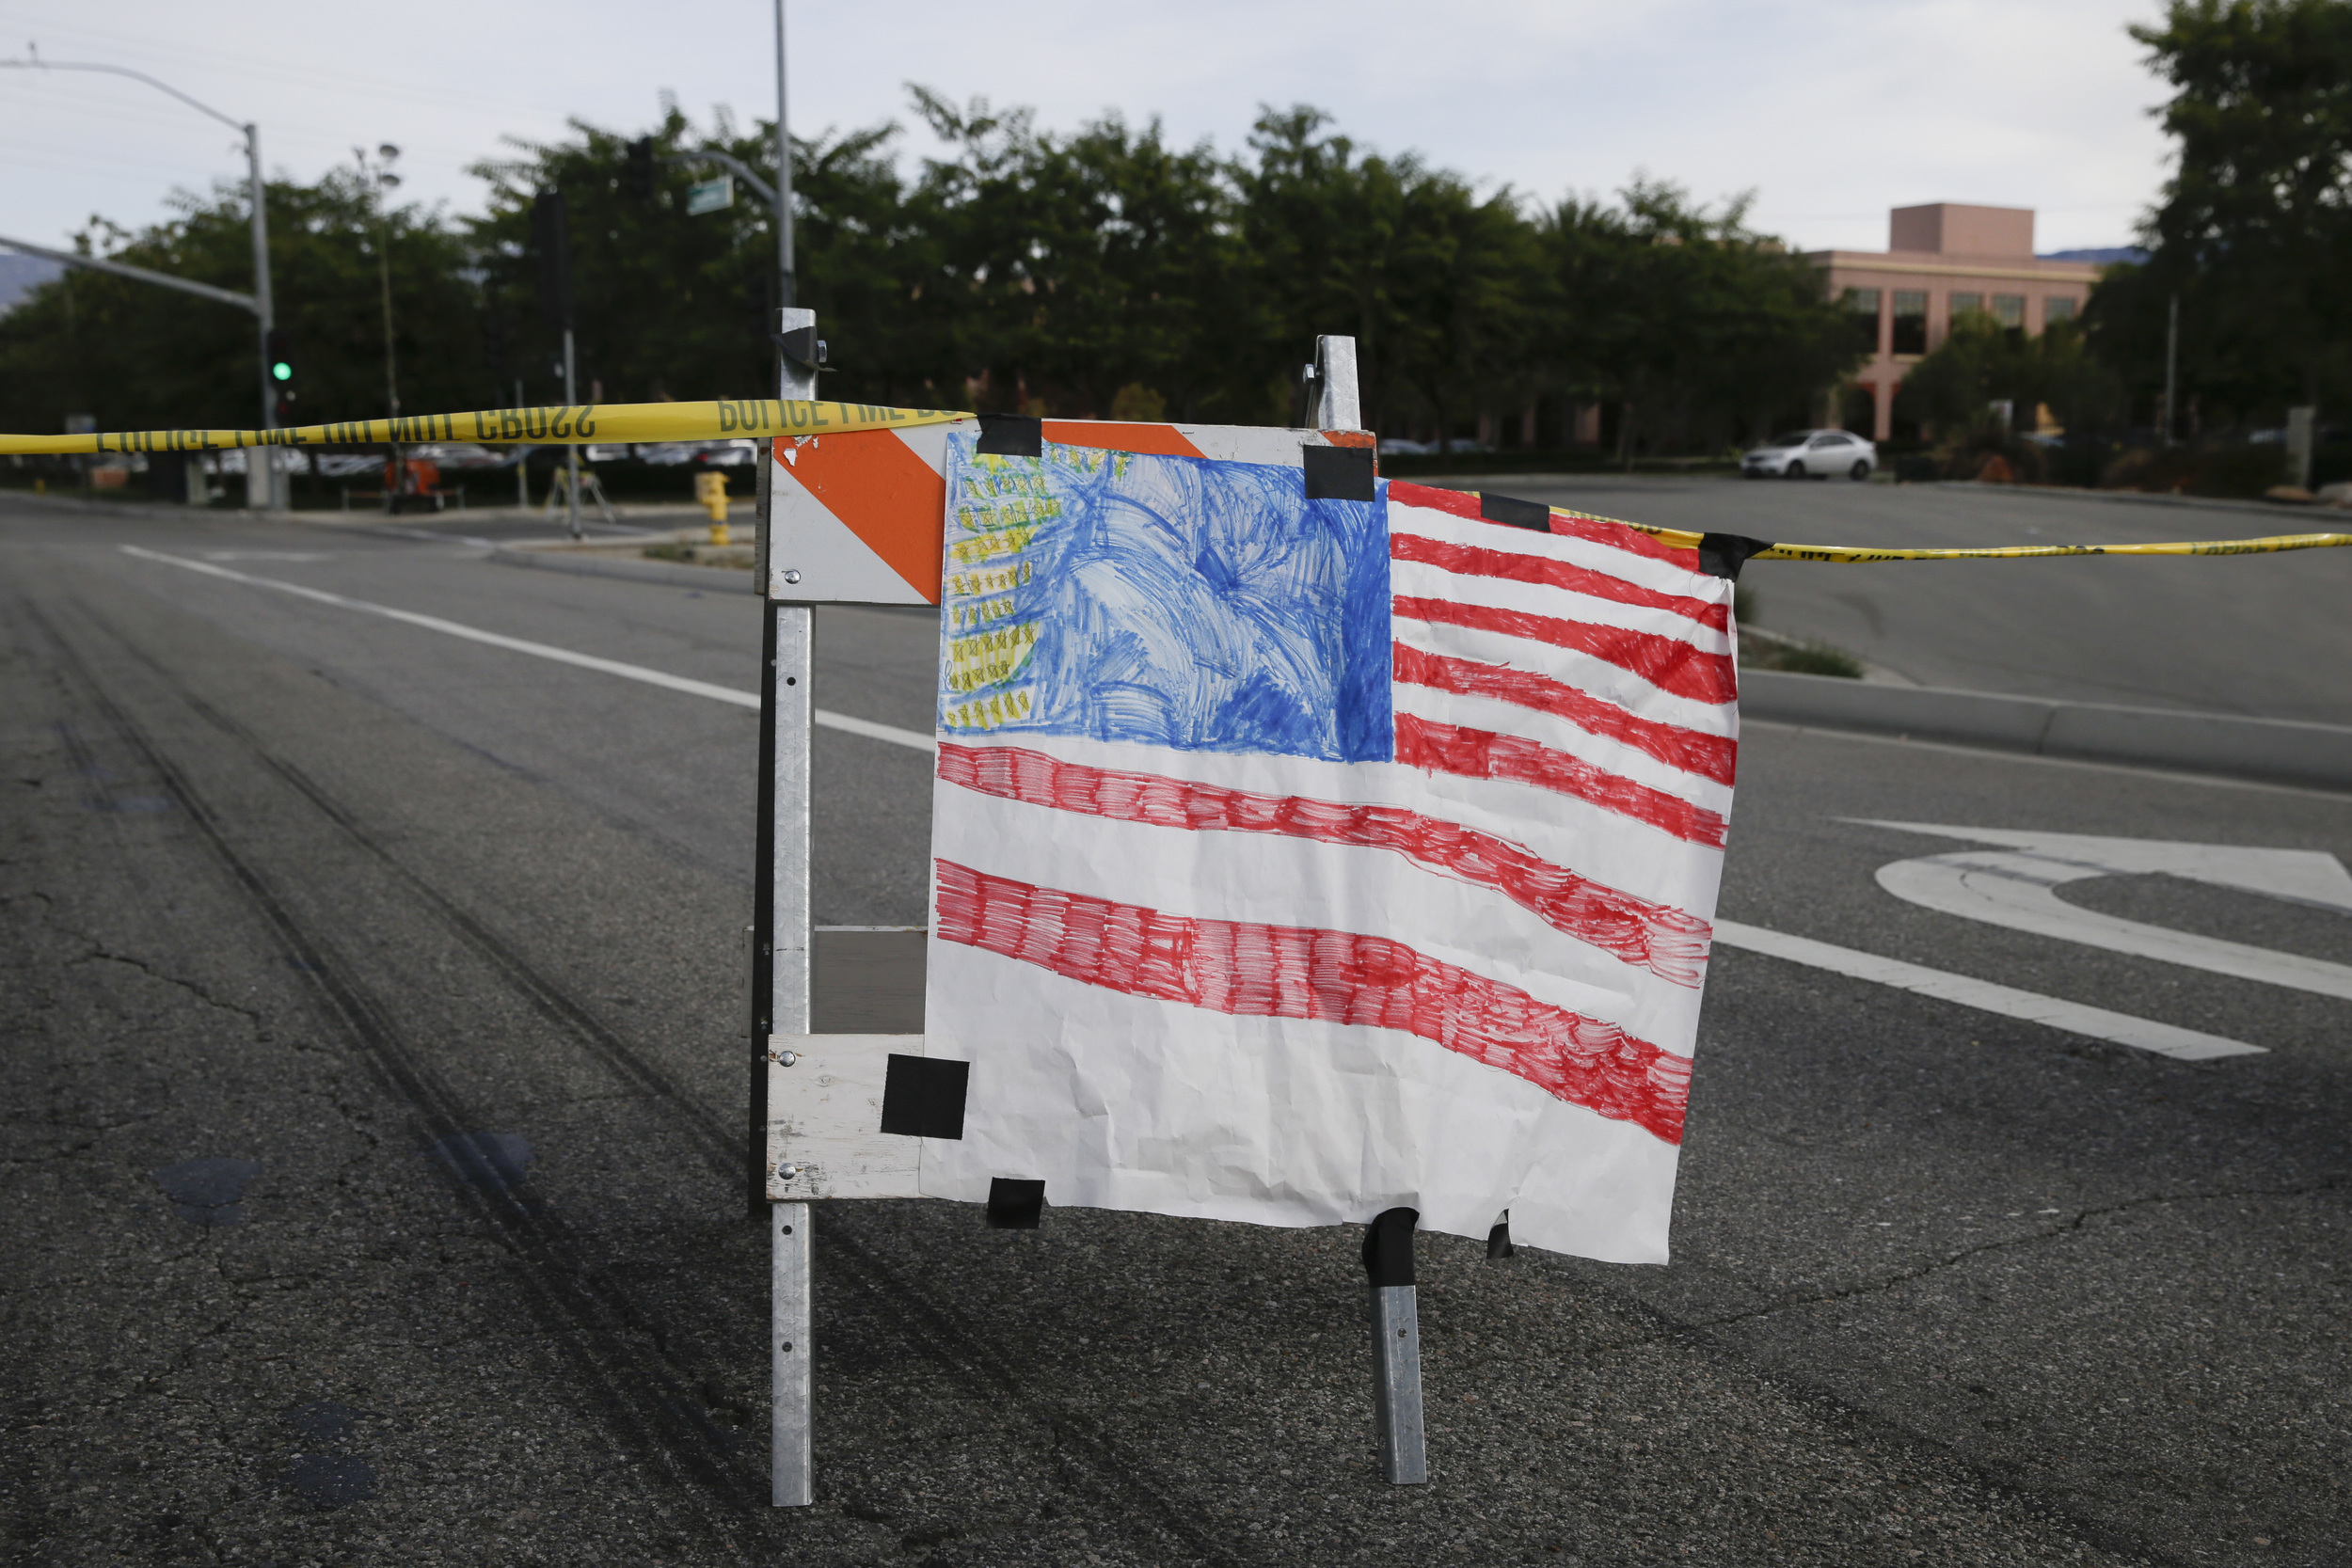 A hand-painted American flag is seen near the building, top right, where Wednesday's shooting rampage took place, at the Inland Regional Center, Sunday, Dec. 6, 2015, in San Bernardino, Calif. The FBI said it's investigating the massacre in San Bernardino, California, that killed 14 and injured 21 as a terrorist attack. (Jae C. Hong/AP)